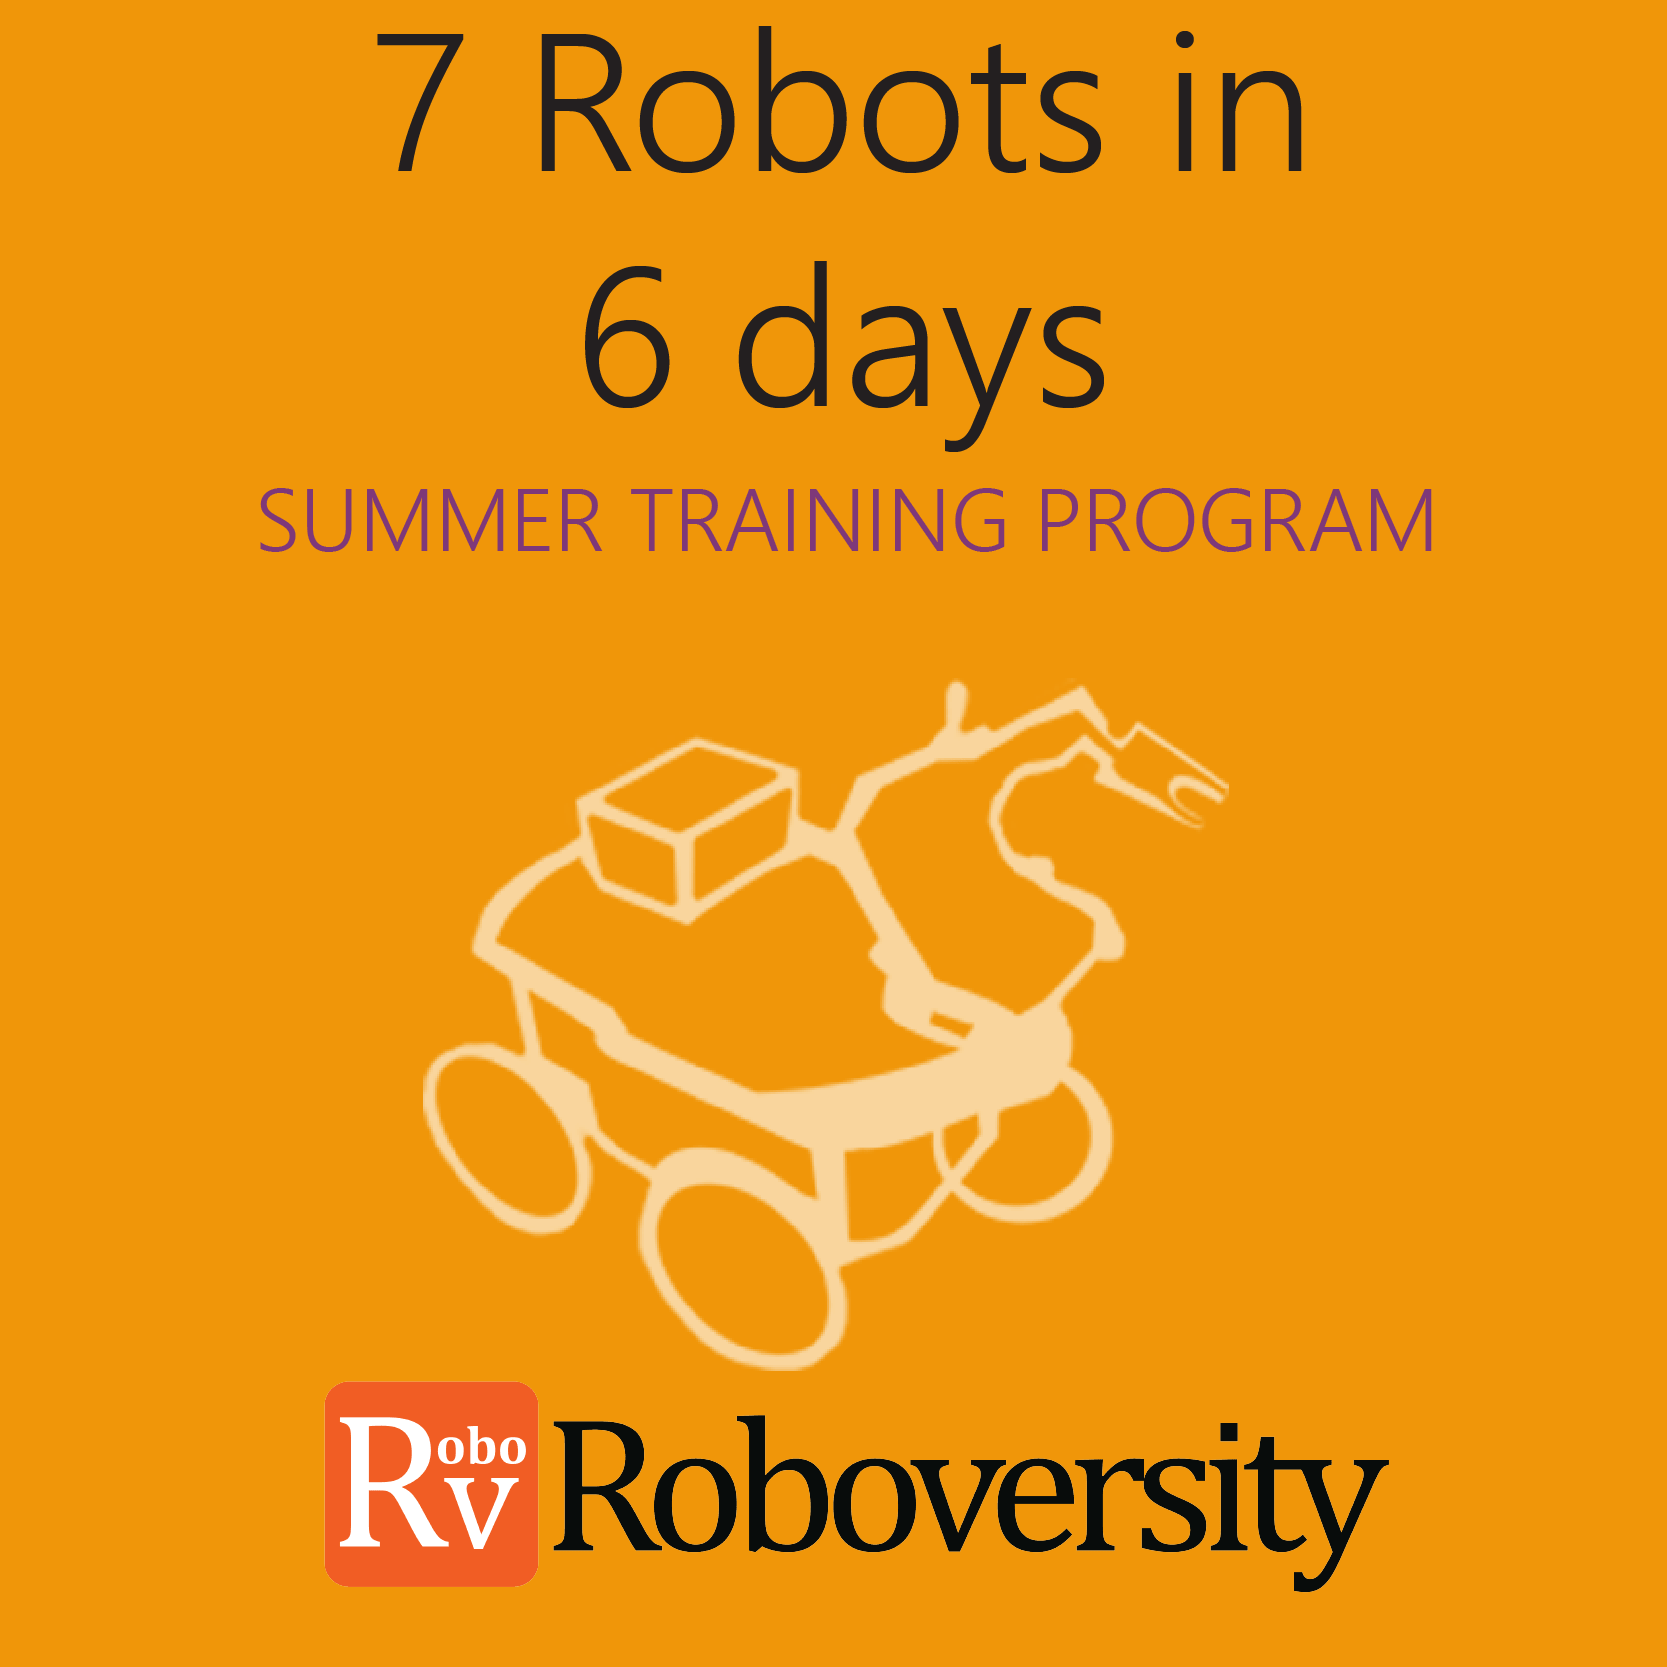 Summer Training Program in Robotics - 7 Robots in 6 Days  at Skyfi Labs Center, CARE Group of Institutions Workshop